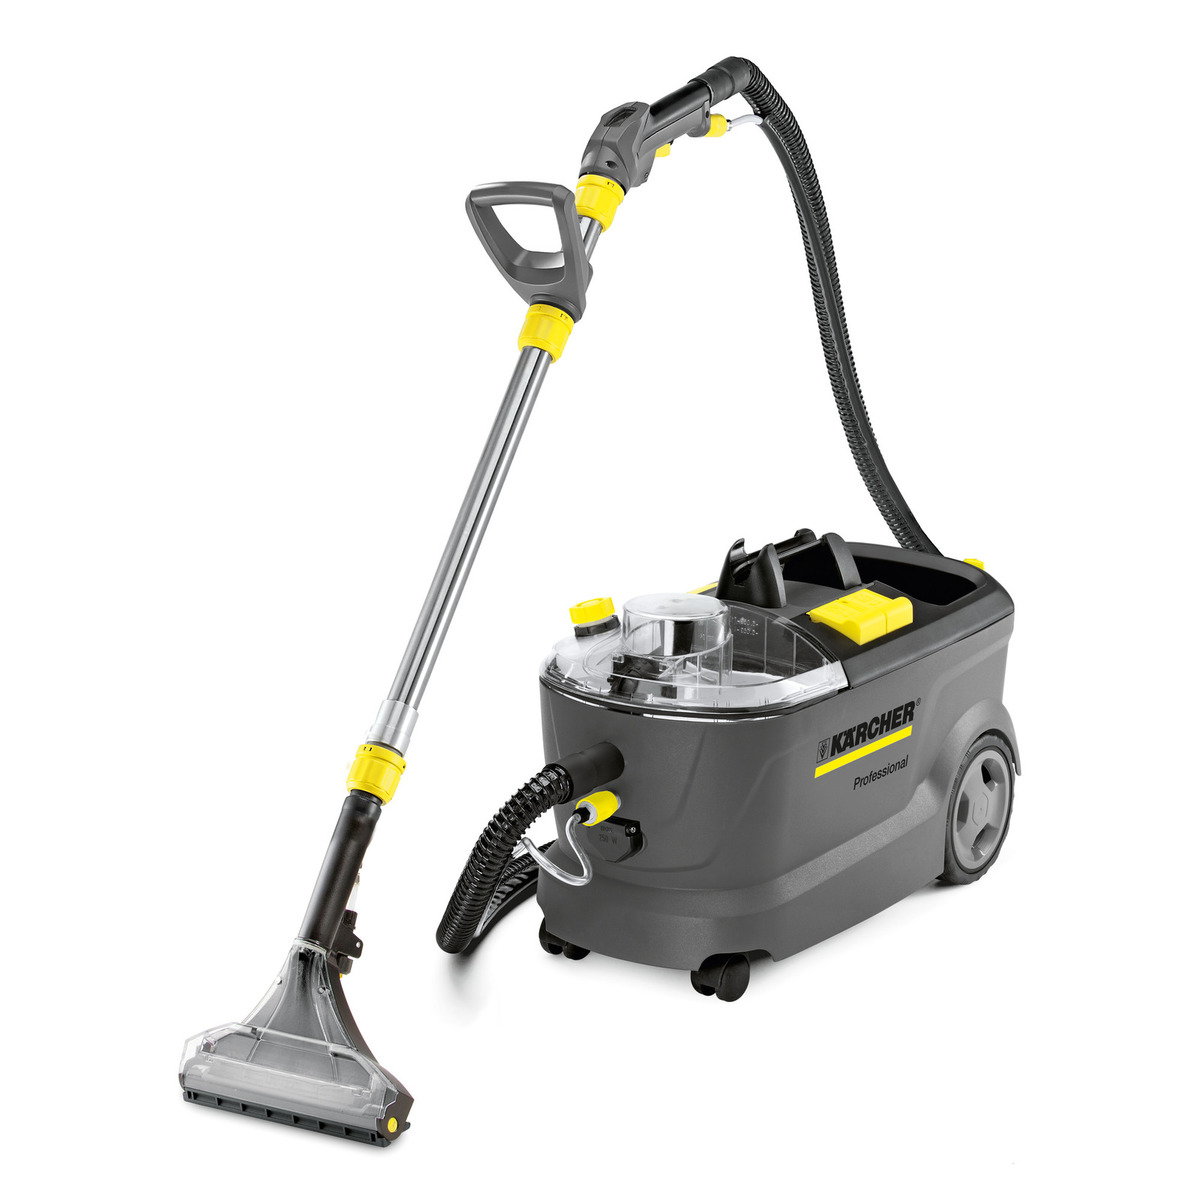 Karcher Spray-extraction cleaner Puzzi 10/2